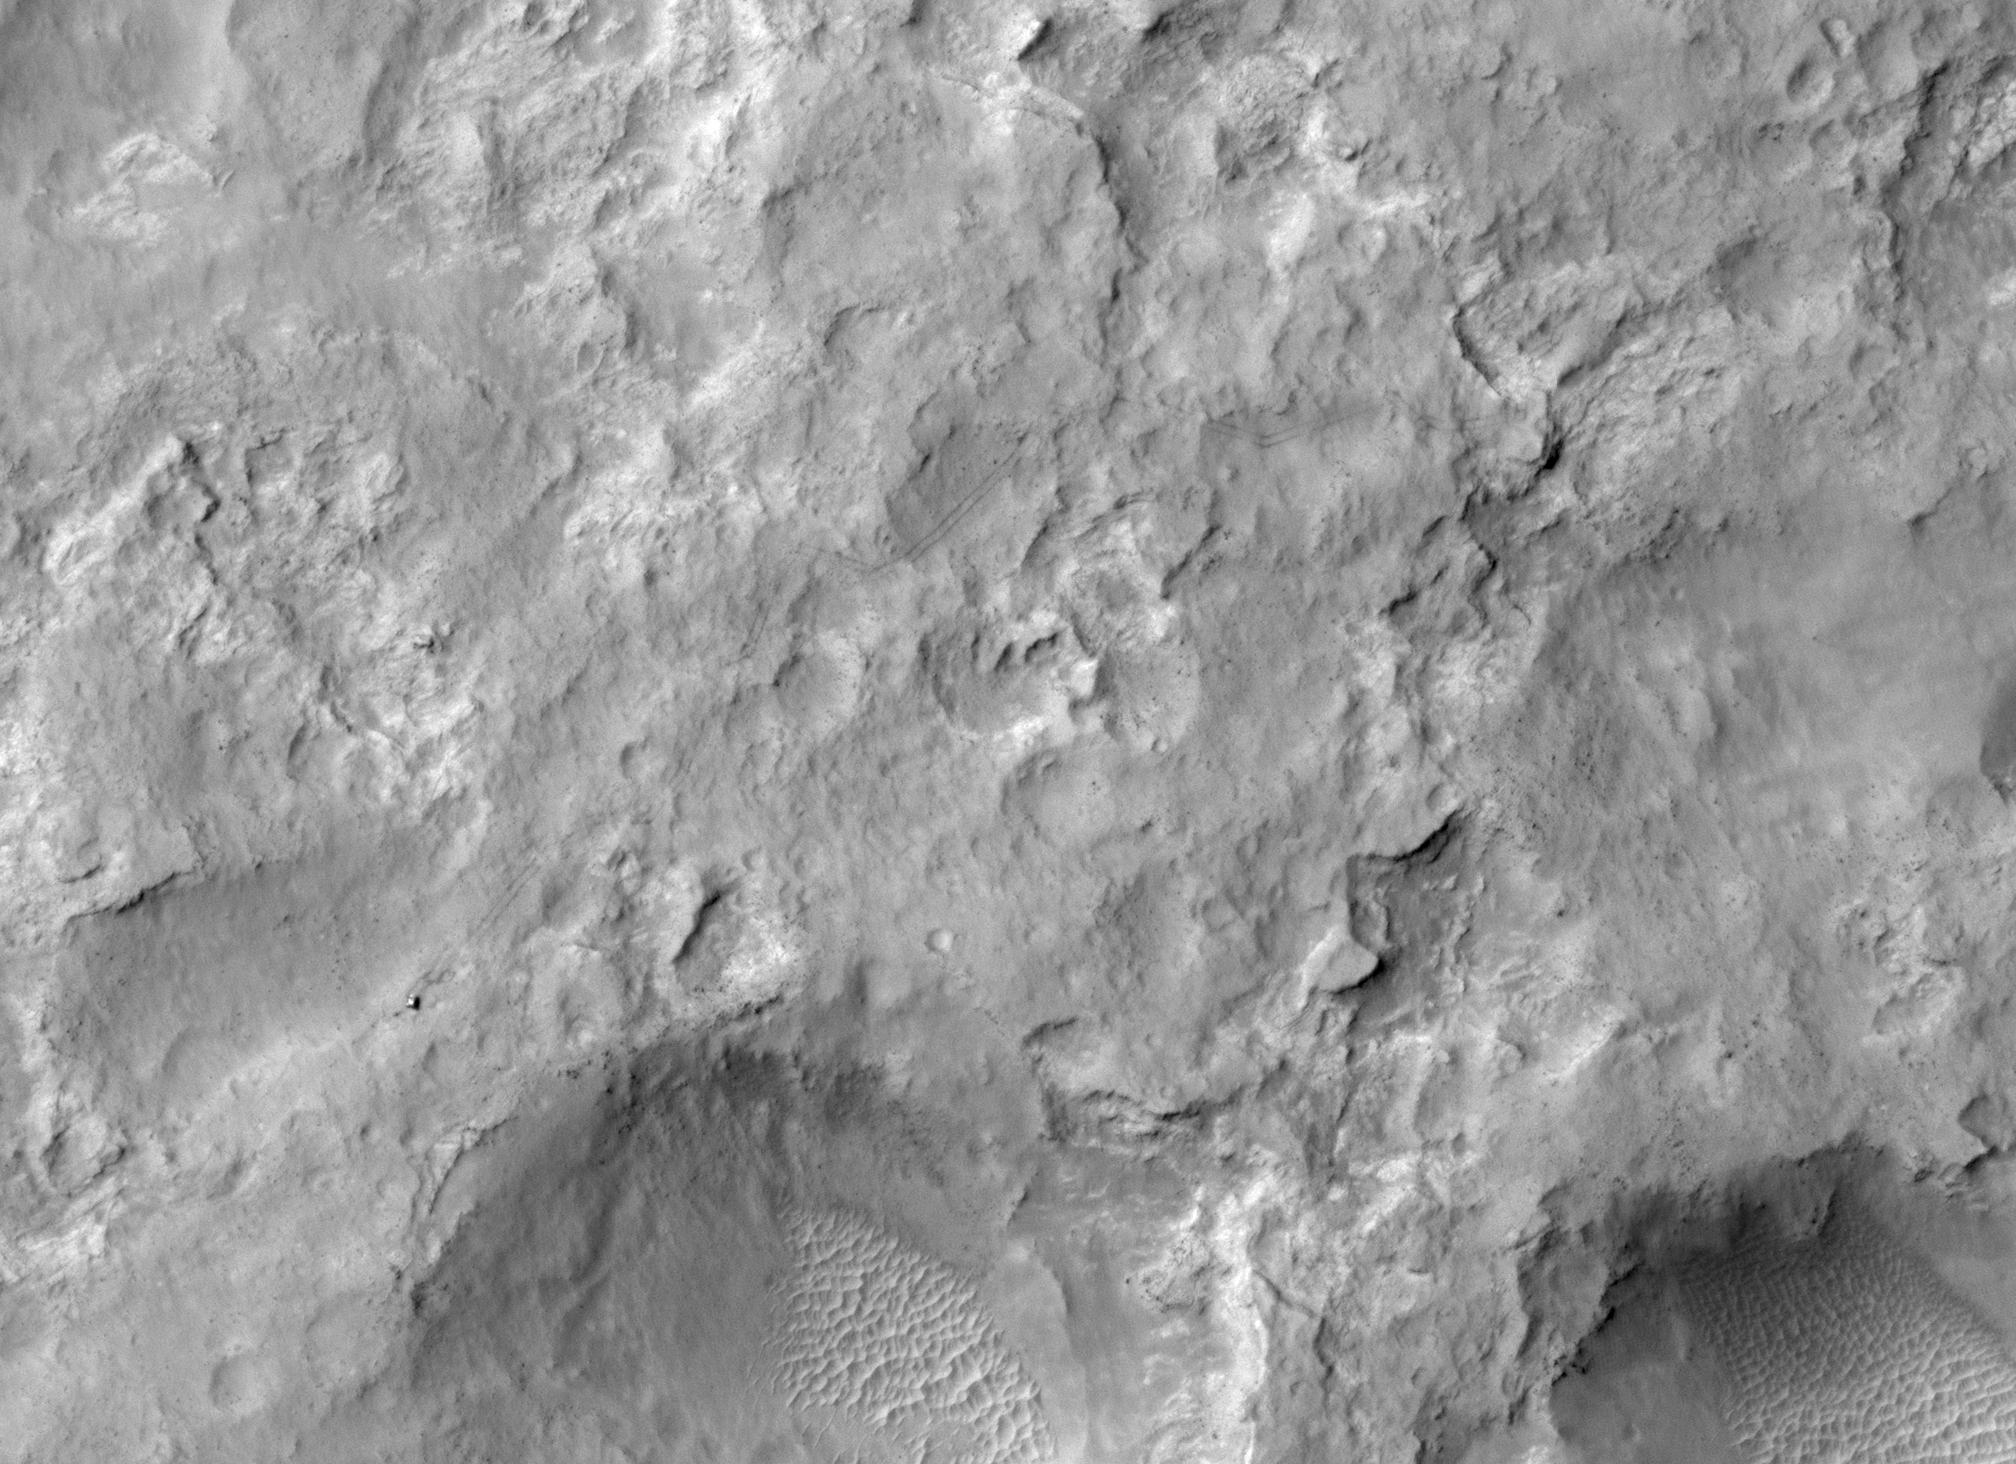 gale crater rover in mars-#8